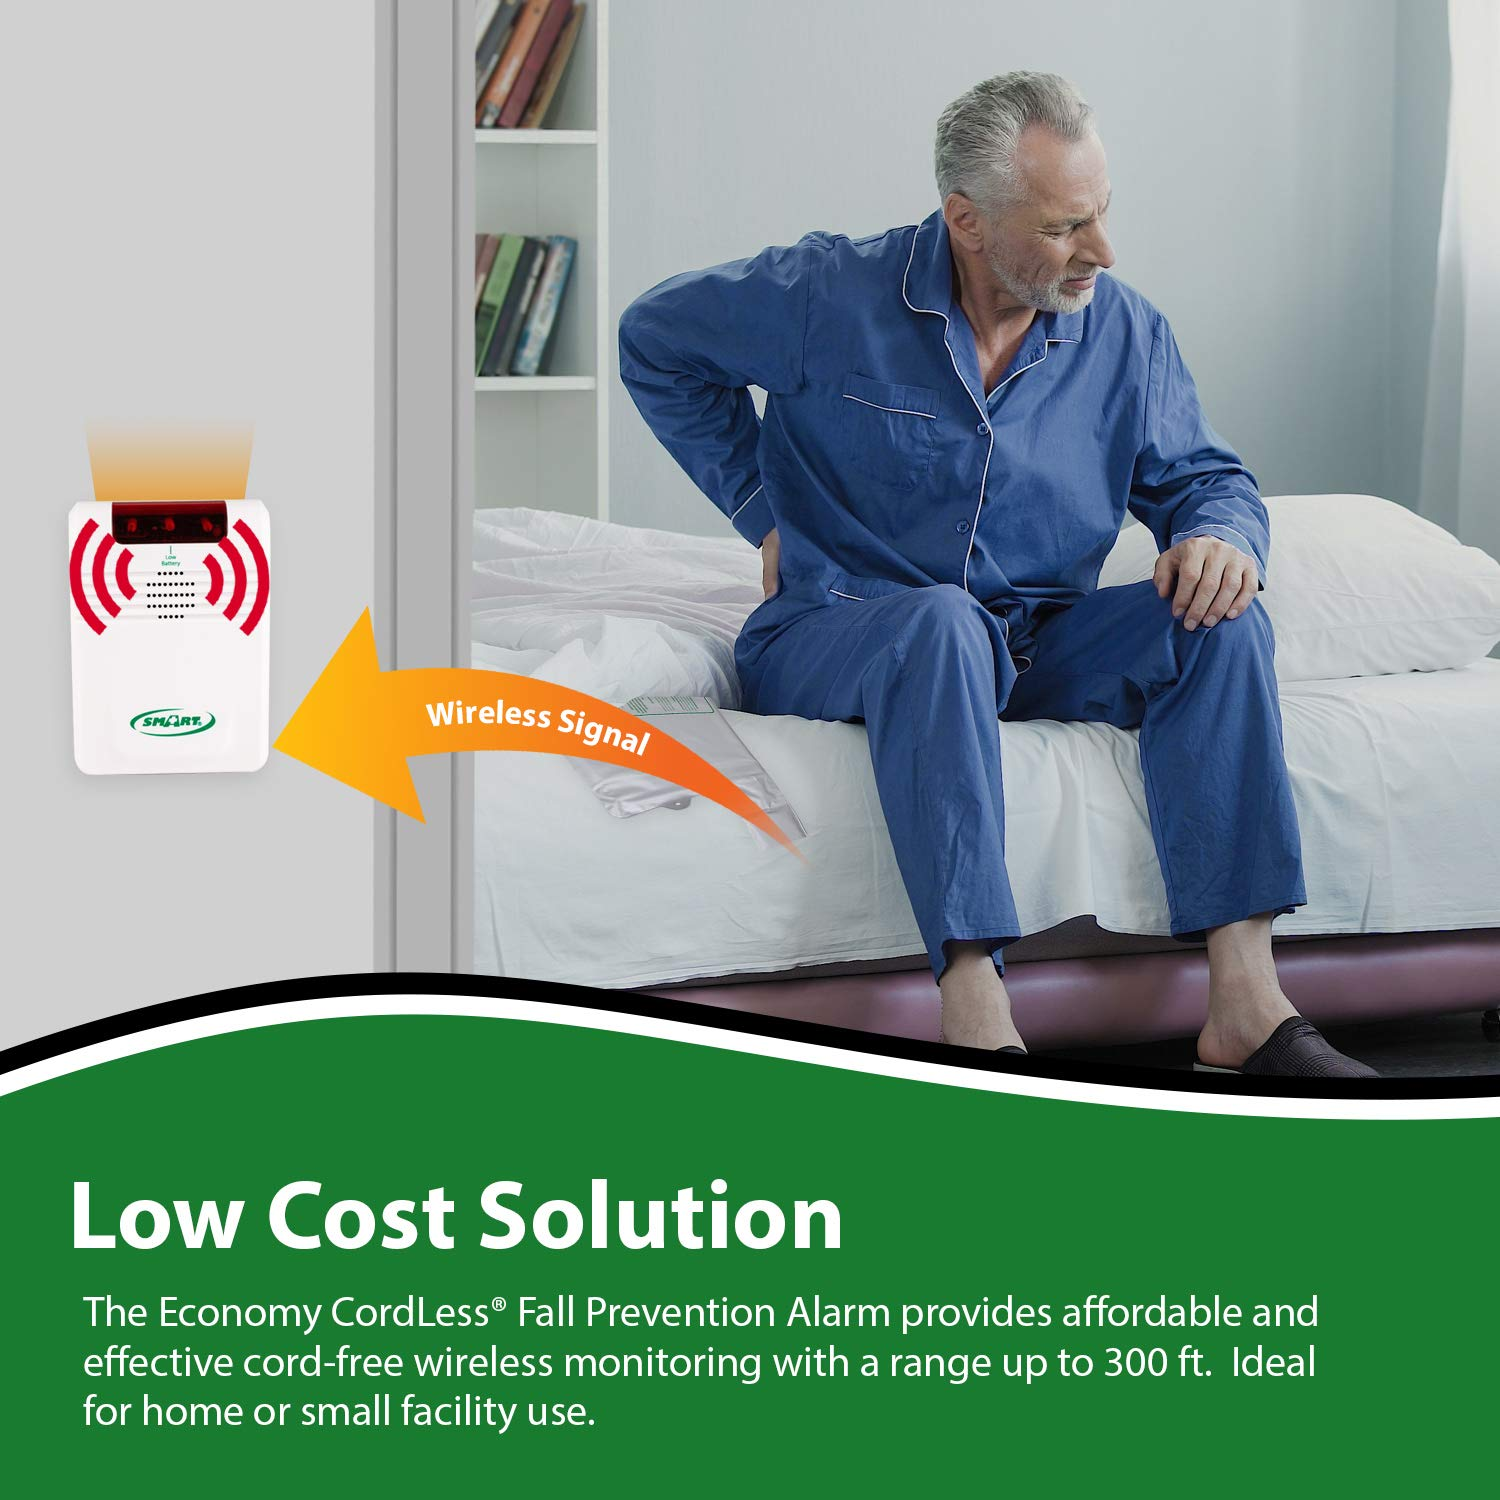 Smart Caregiver Corporation Cordless Bed Exit Monitoring System Alarm with Bed Pressure Sensing Pad - Help Prevent Falls and Wandering While ...